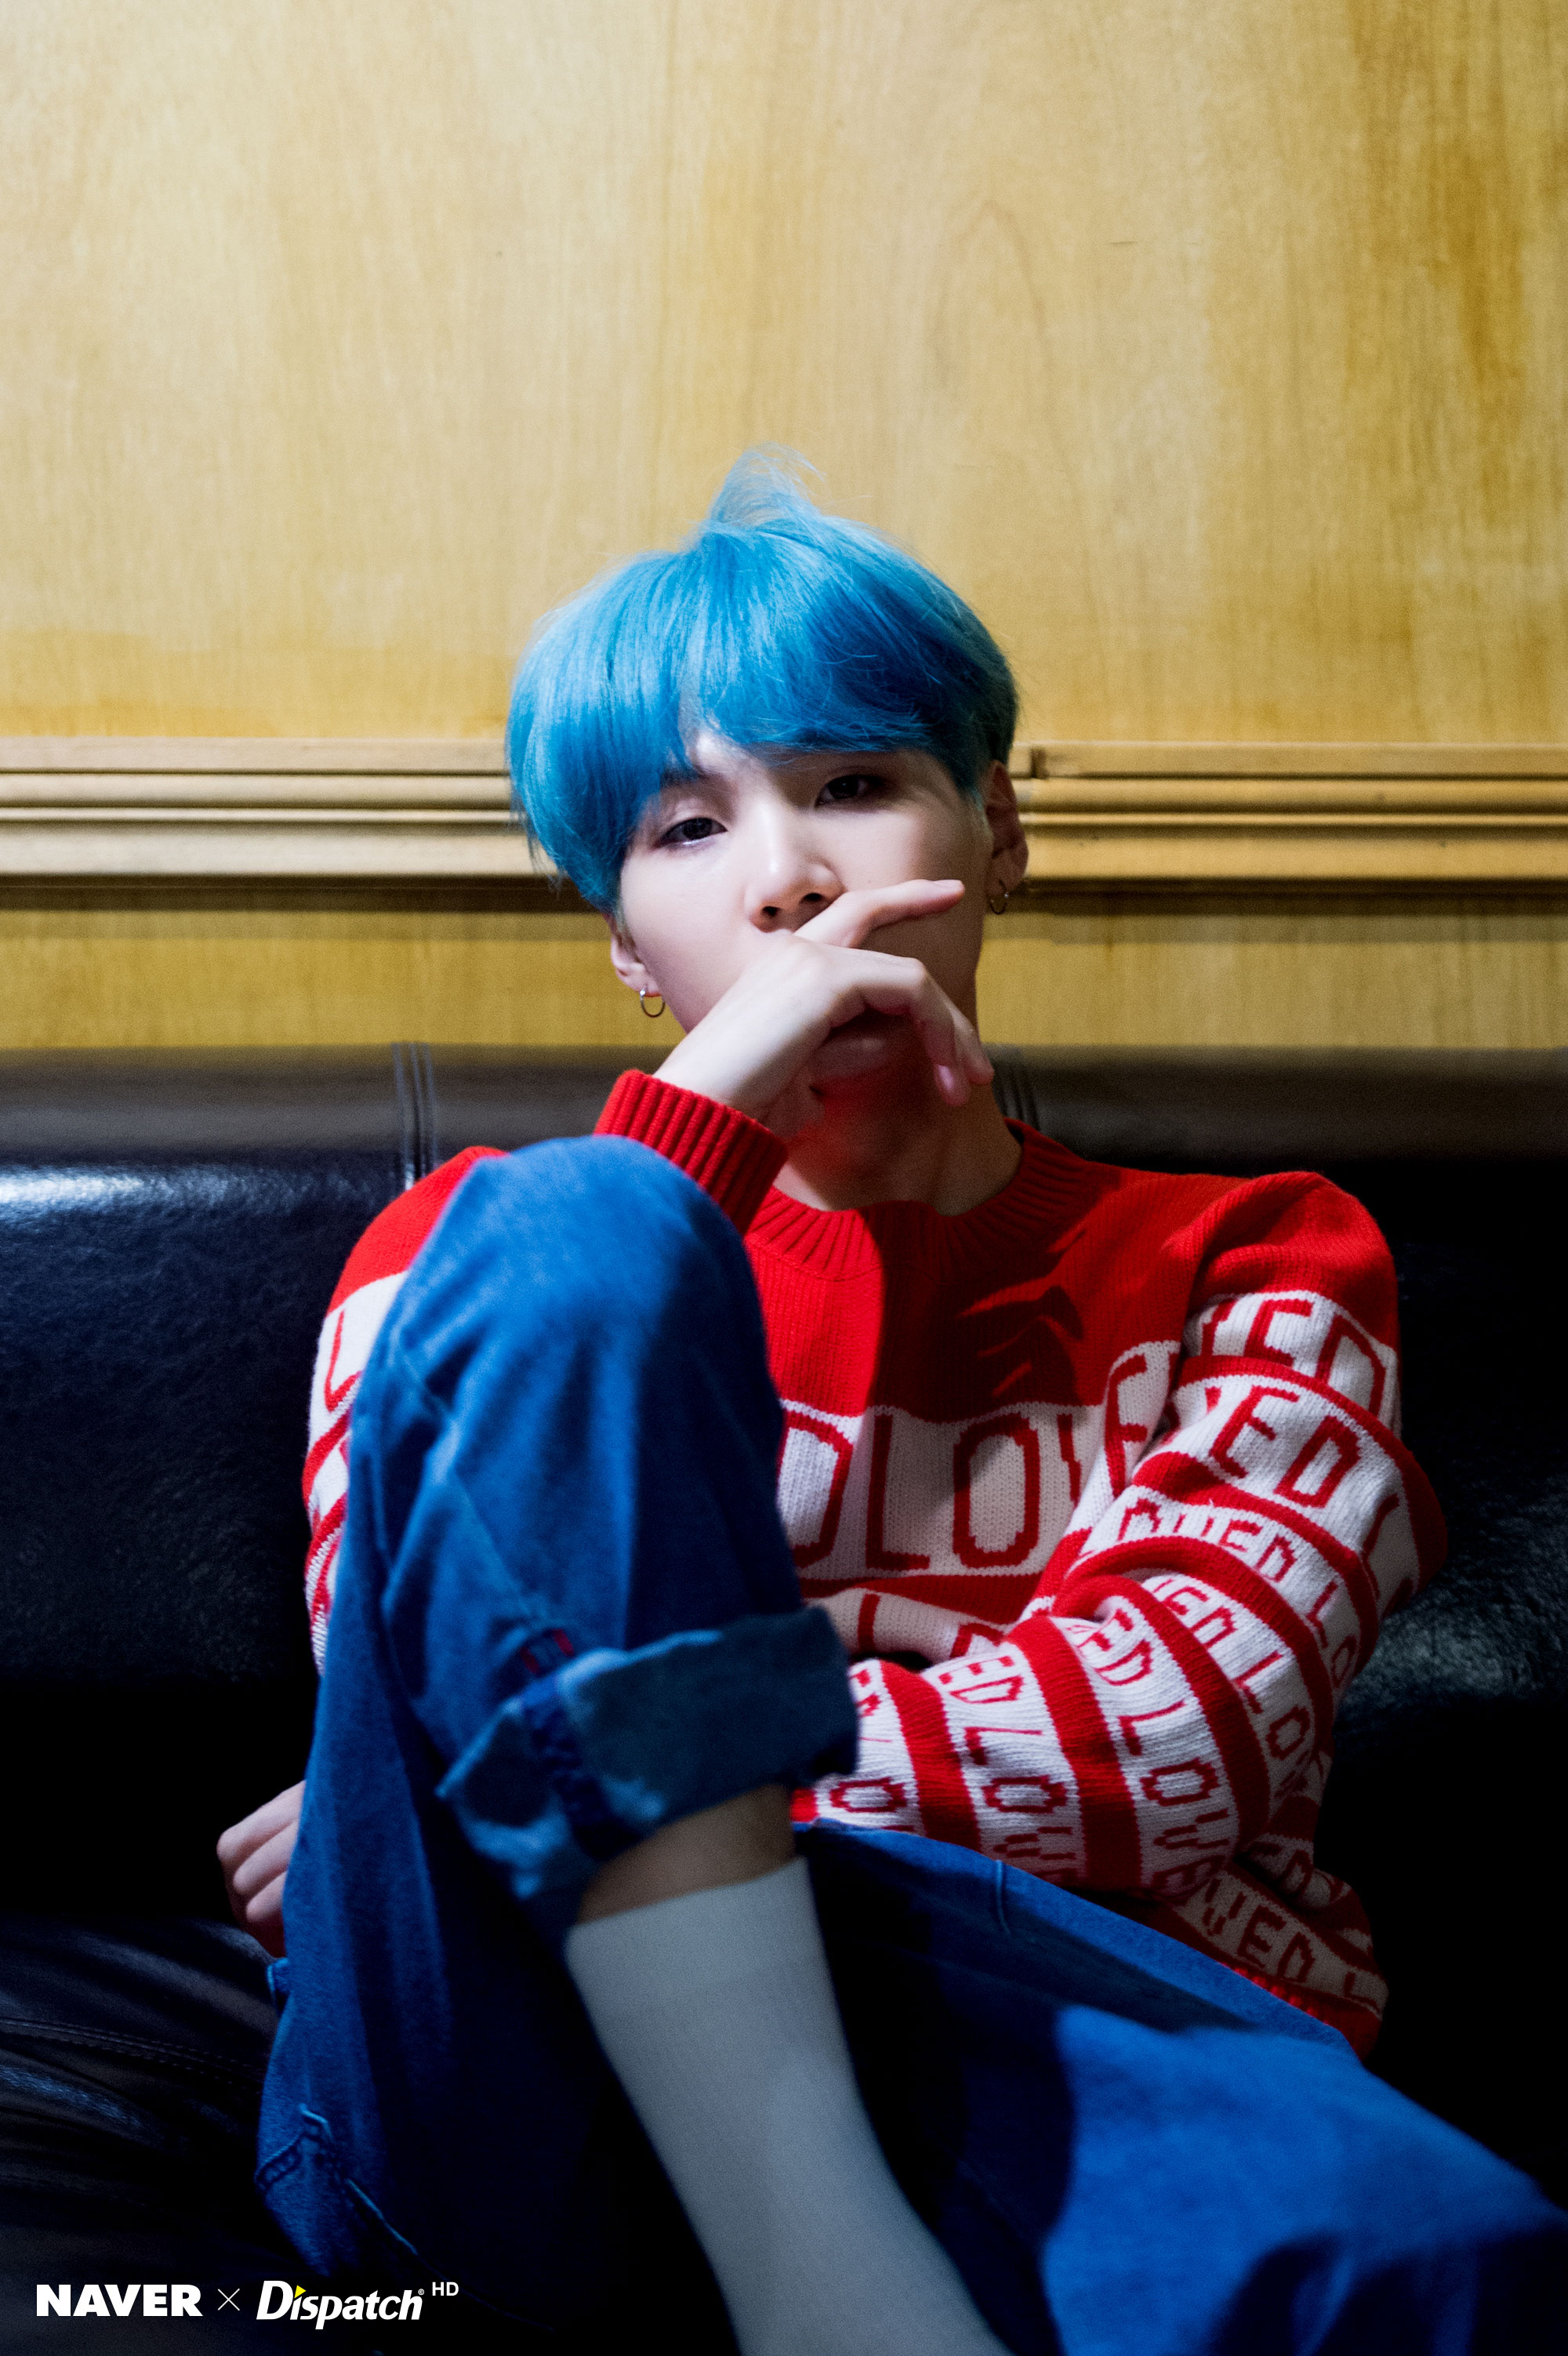 [Picture] BTS 5th Mini Album LOVE YOURSELF 承 'Her' Jacket ... Jack Frost Cosplay Jacket